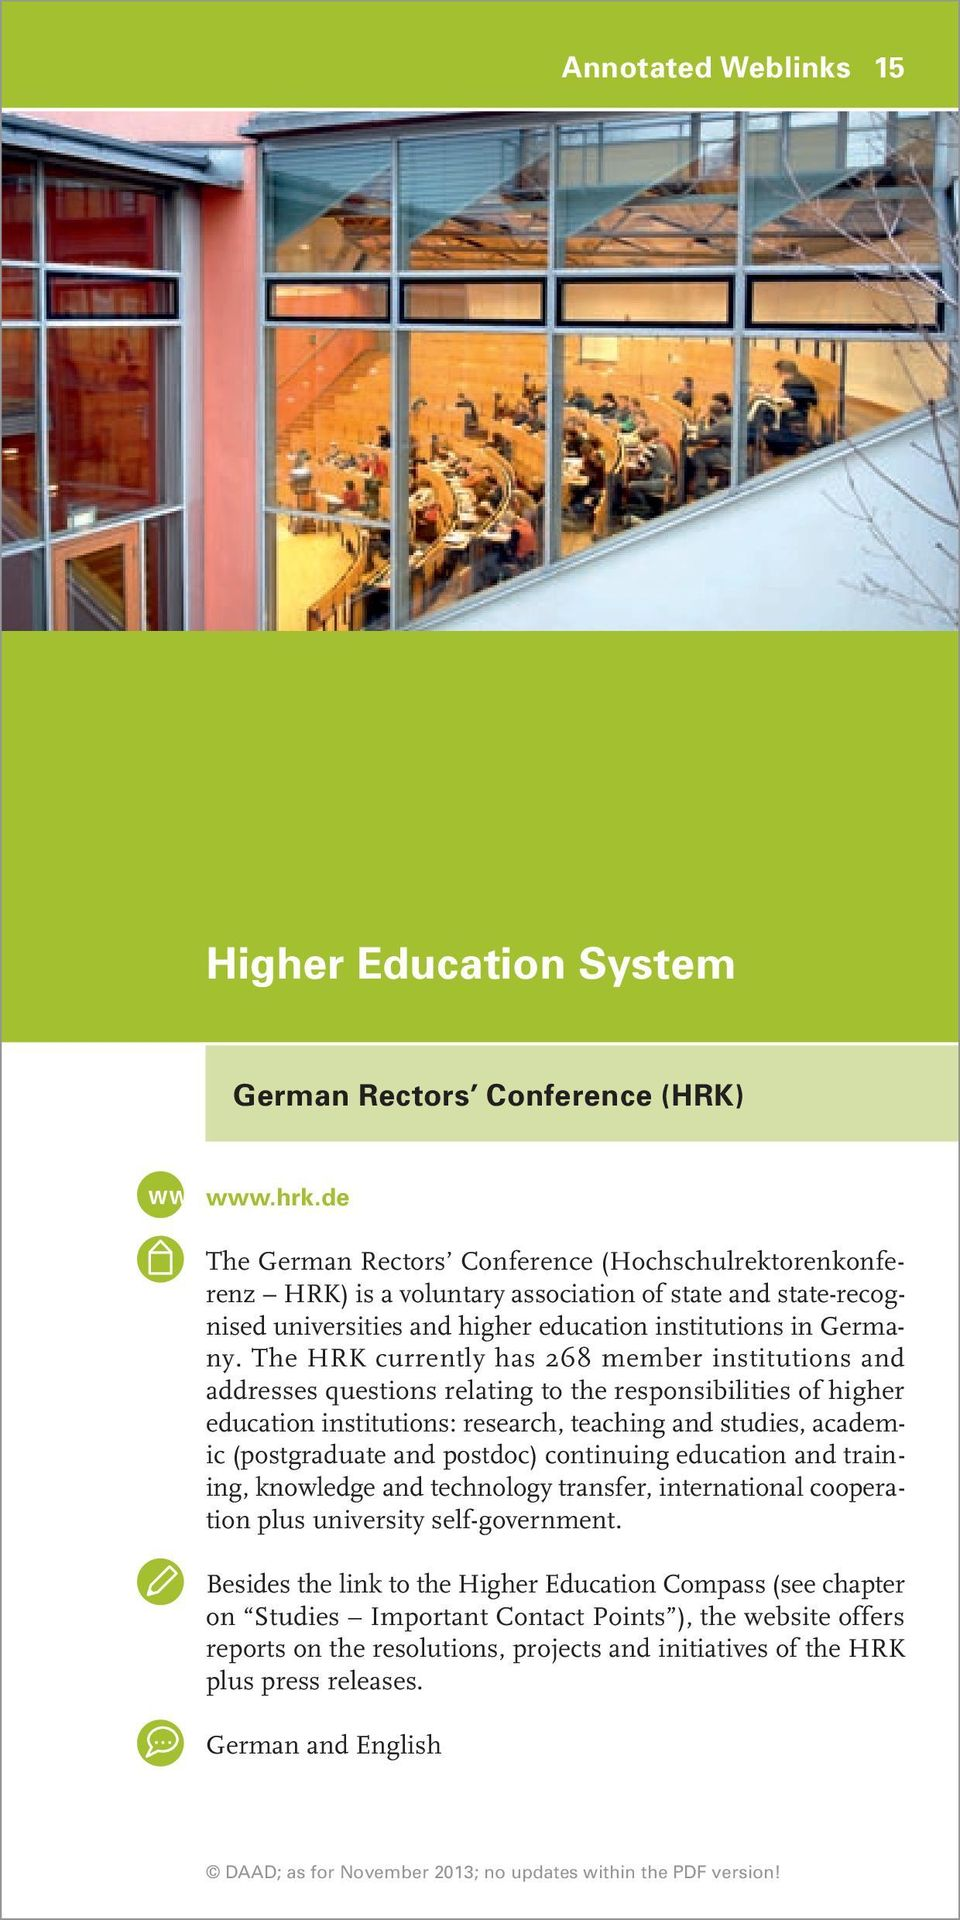 The HRK currently has 268 member institutions and addresses questions relating to the responsibilities of higher education institutions: research, teaching and studies, academic (postgraduate and